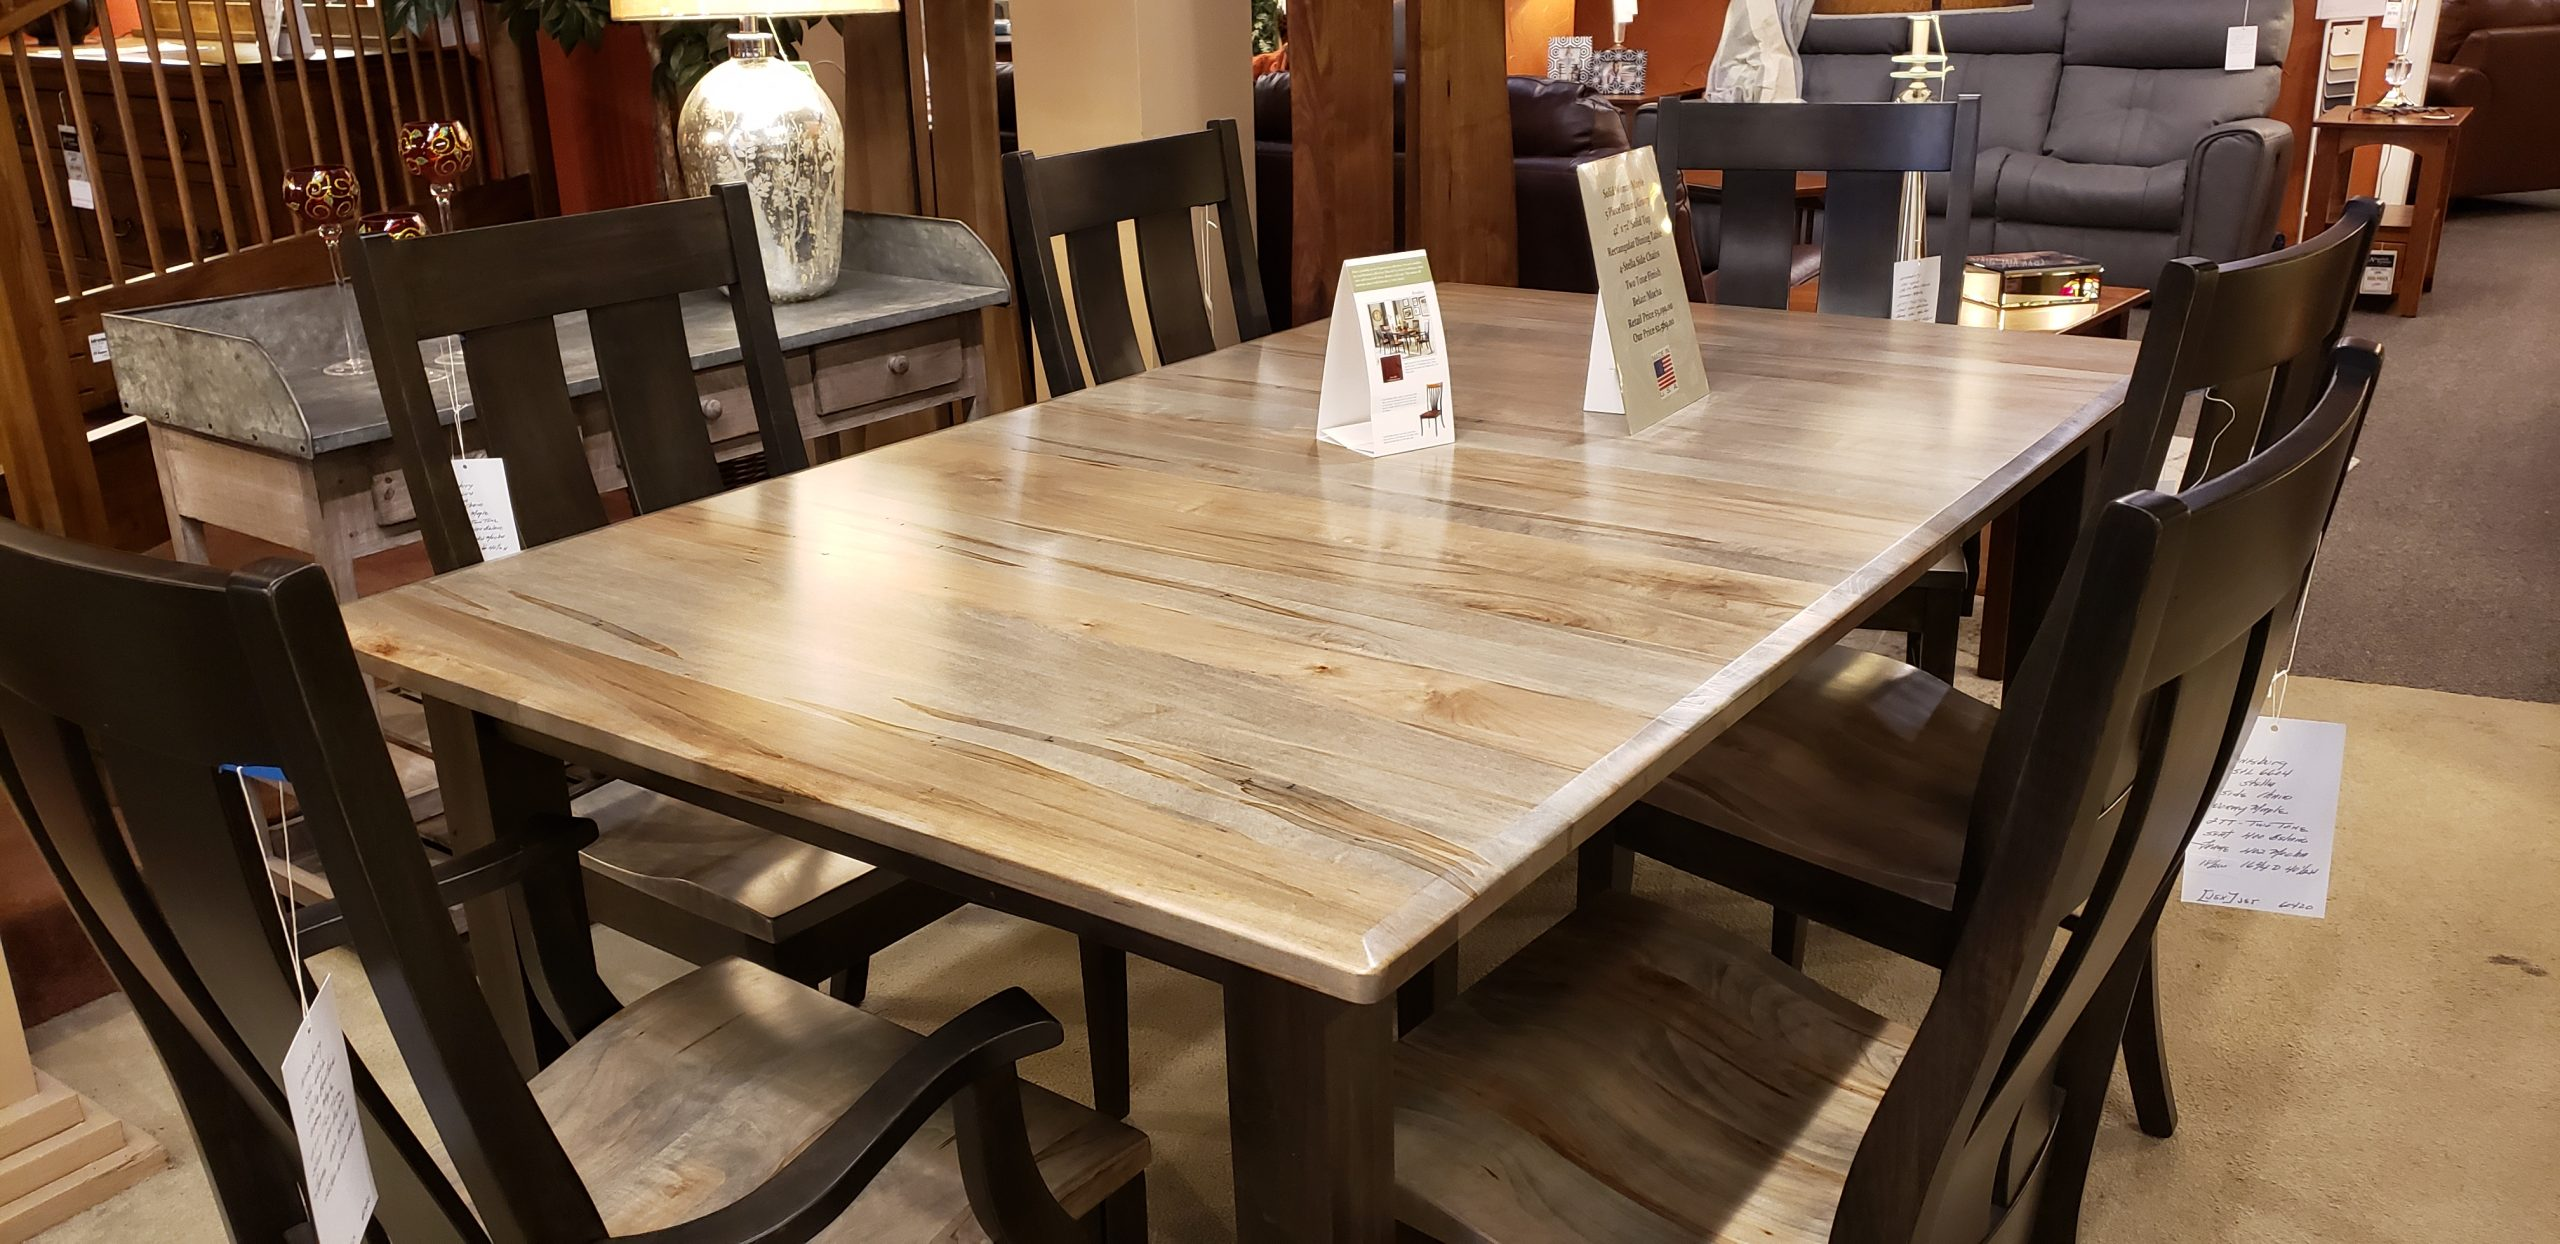 Welcome To Adirondack Furniture, Best Quality Dining Room Furniture Manufacturers